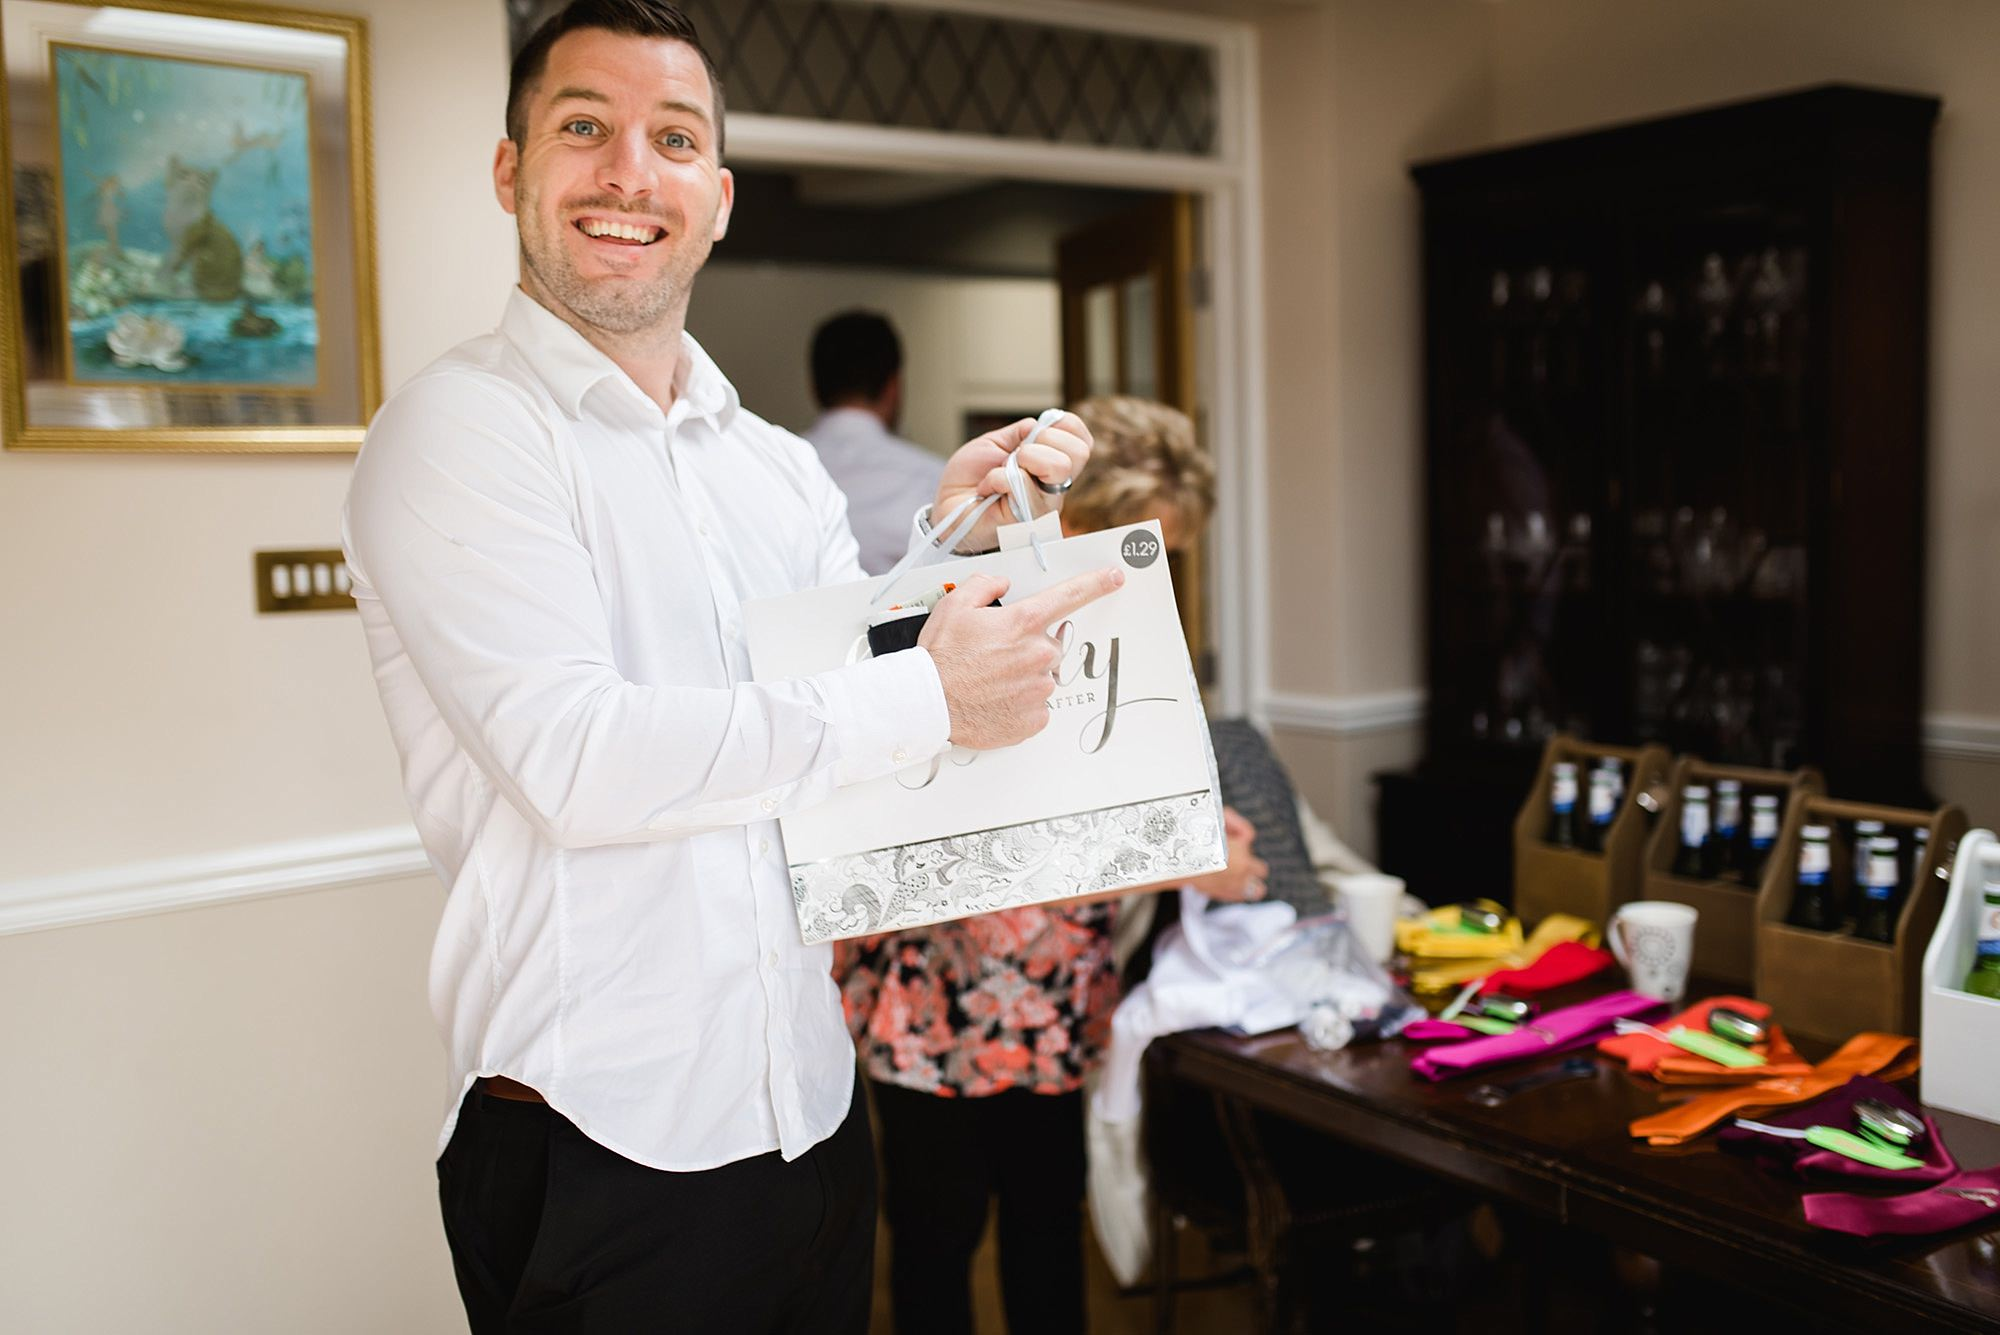 Fun London Wedding funny picture of groomsman showing off price sticker on gift bag